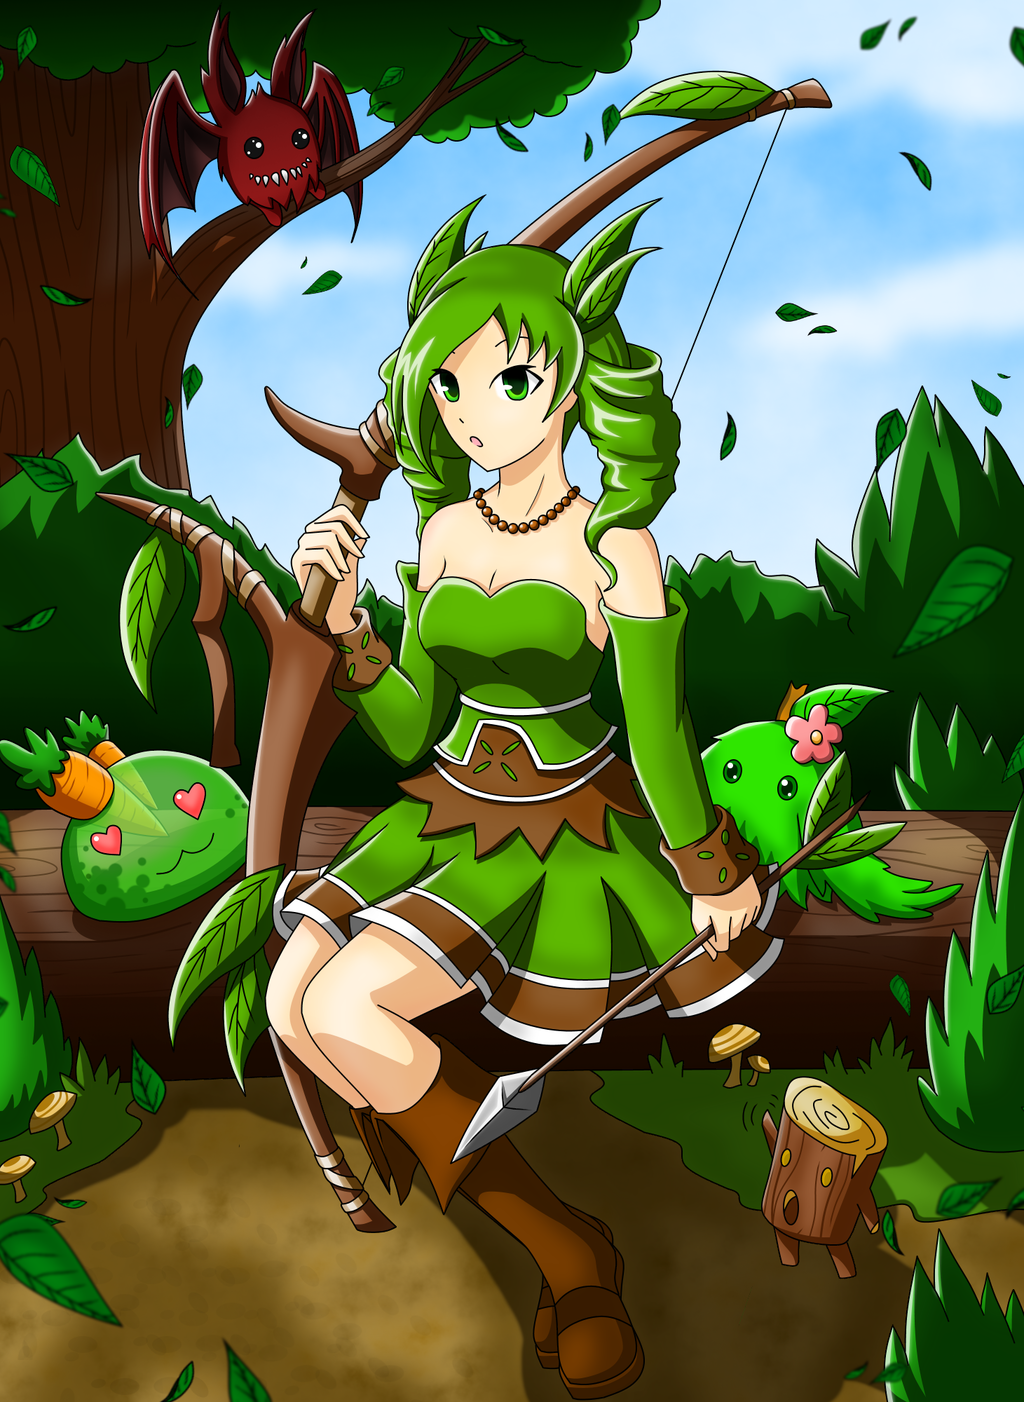 ebf_anna_the_nature_girl_by_sunnythesunflower-dbzfjik